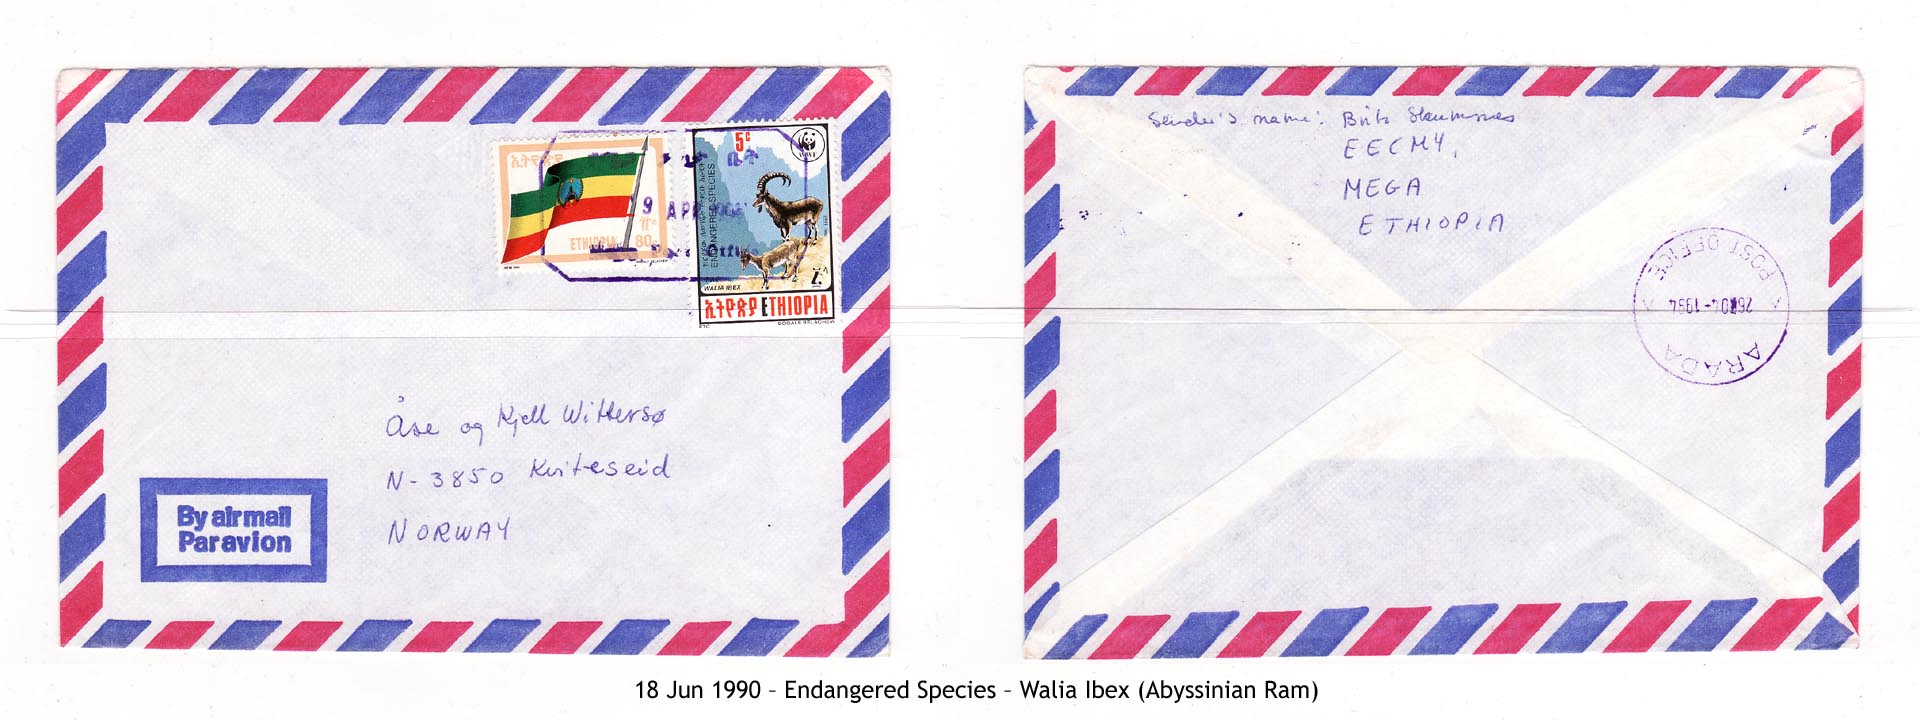 19900618 – Endangered Species – Walia Ibex (Abyssinian Ram)